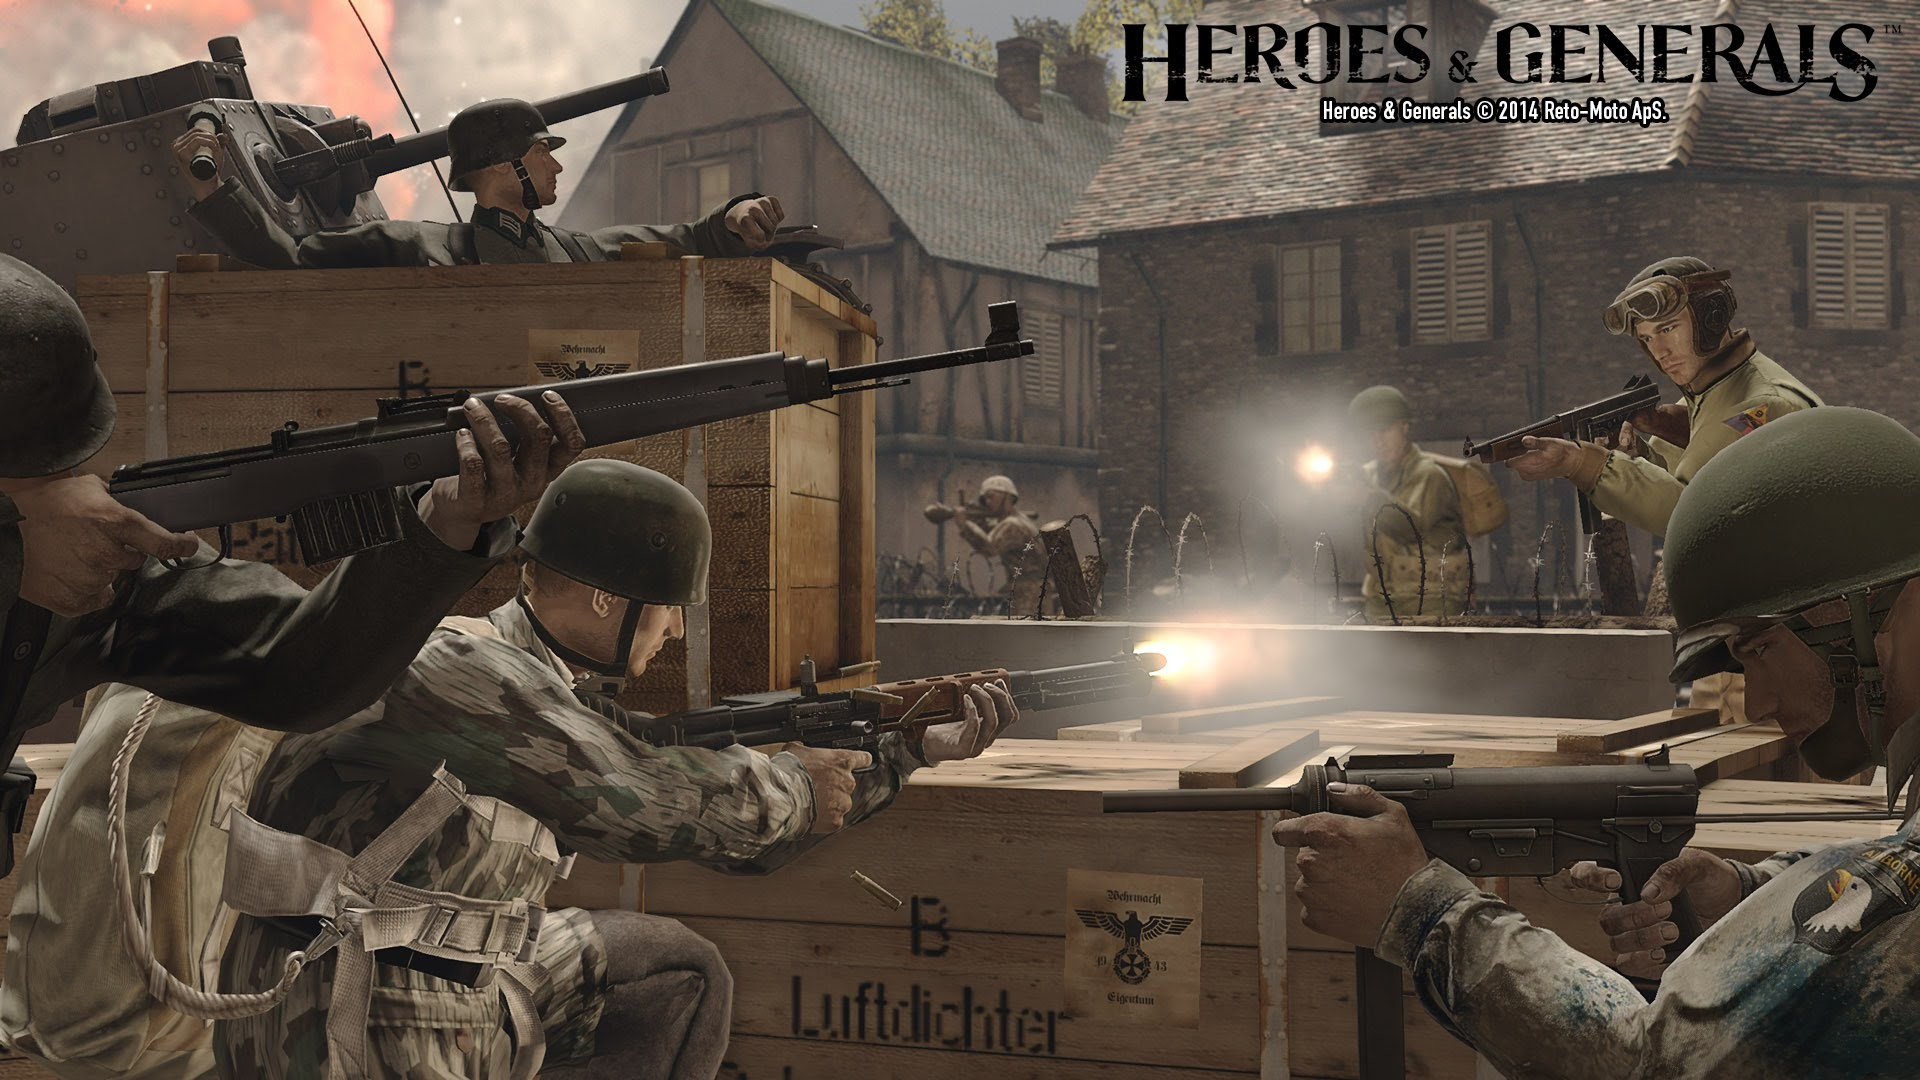 Heroes and Generals Live Commentary #1! (Heroes and Generals Gameplay)